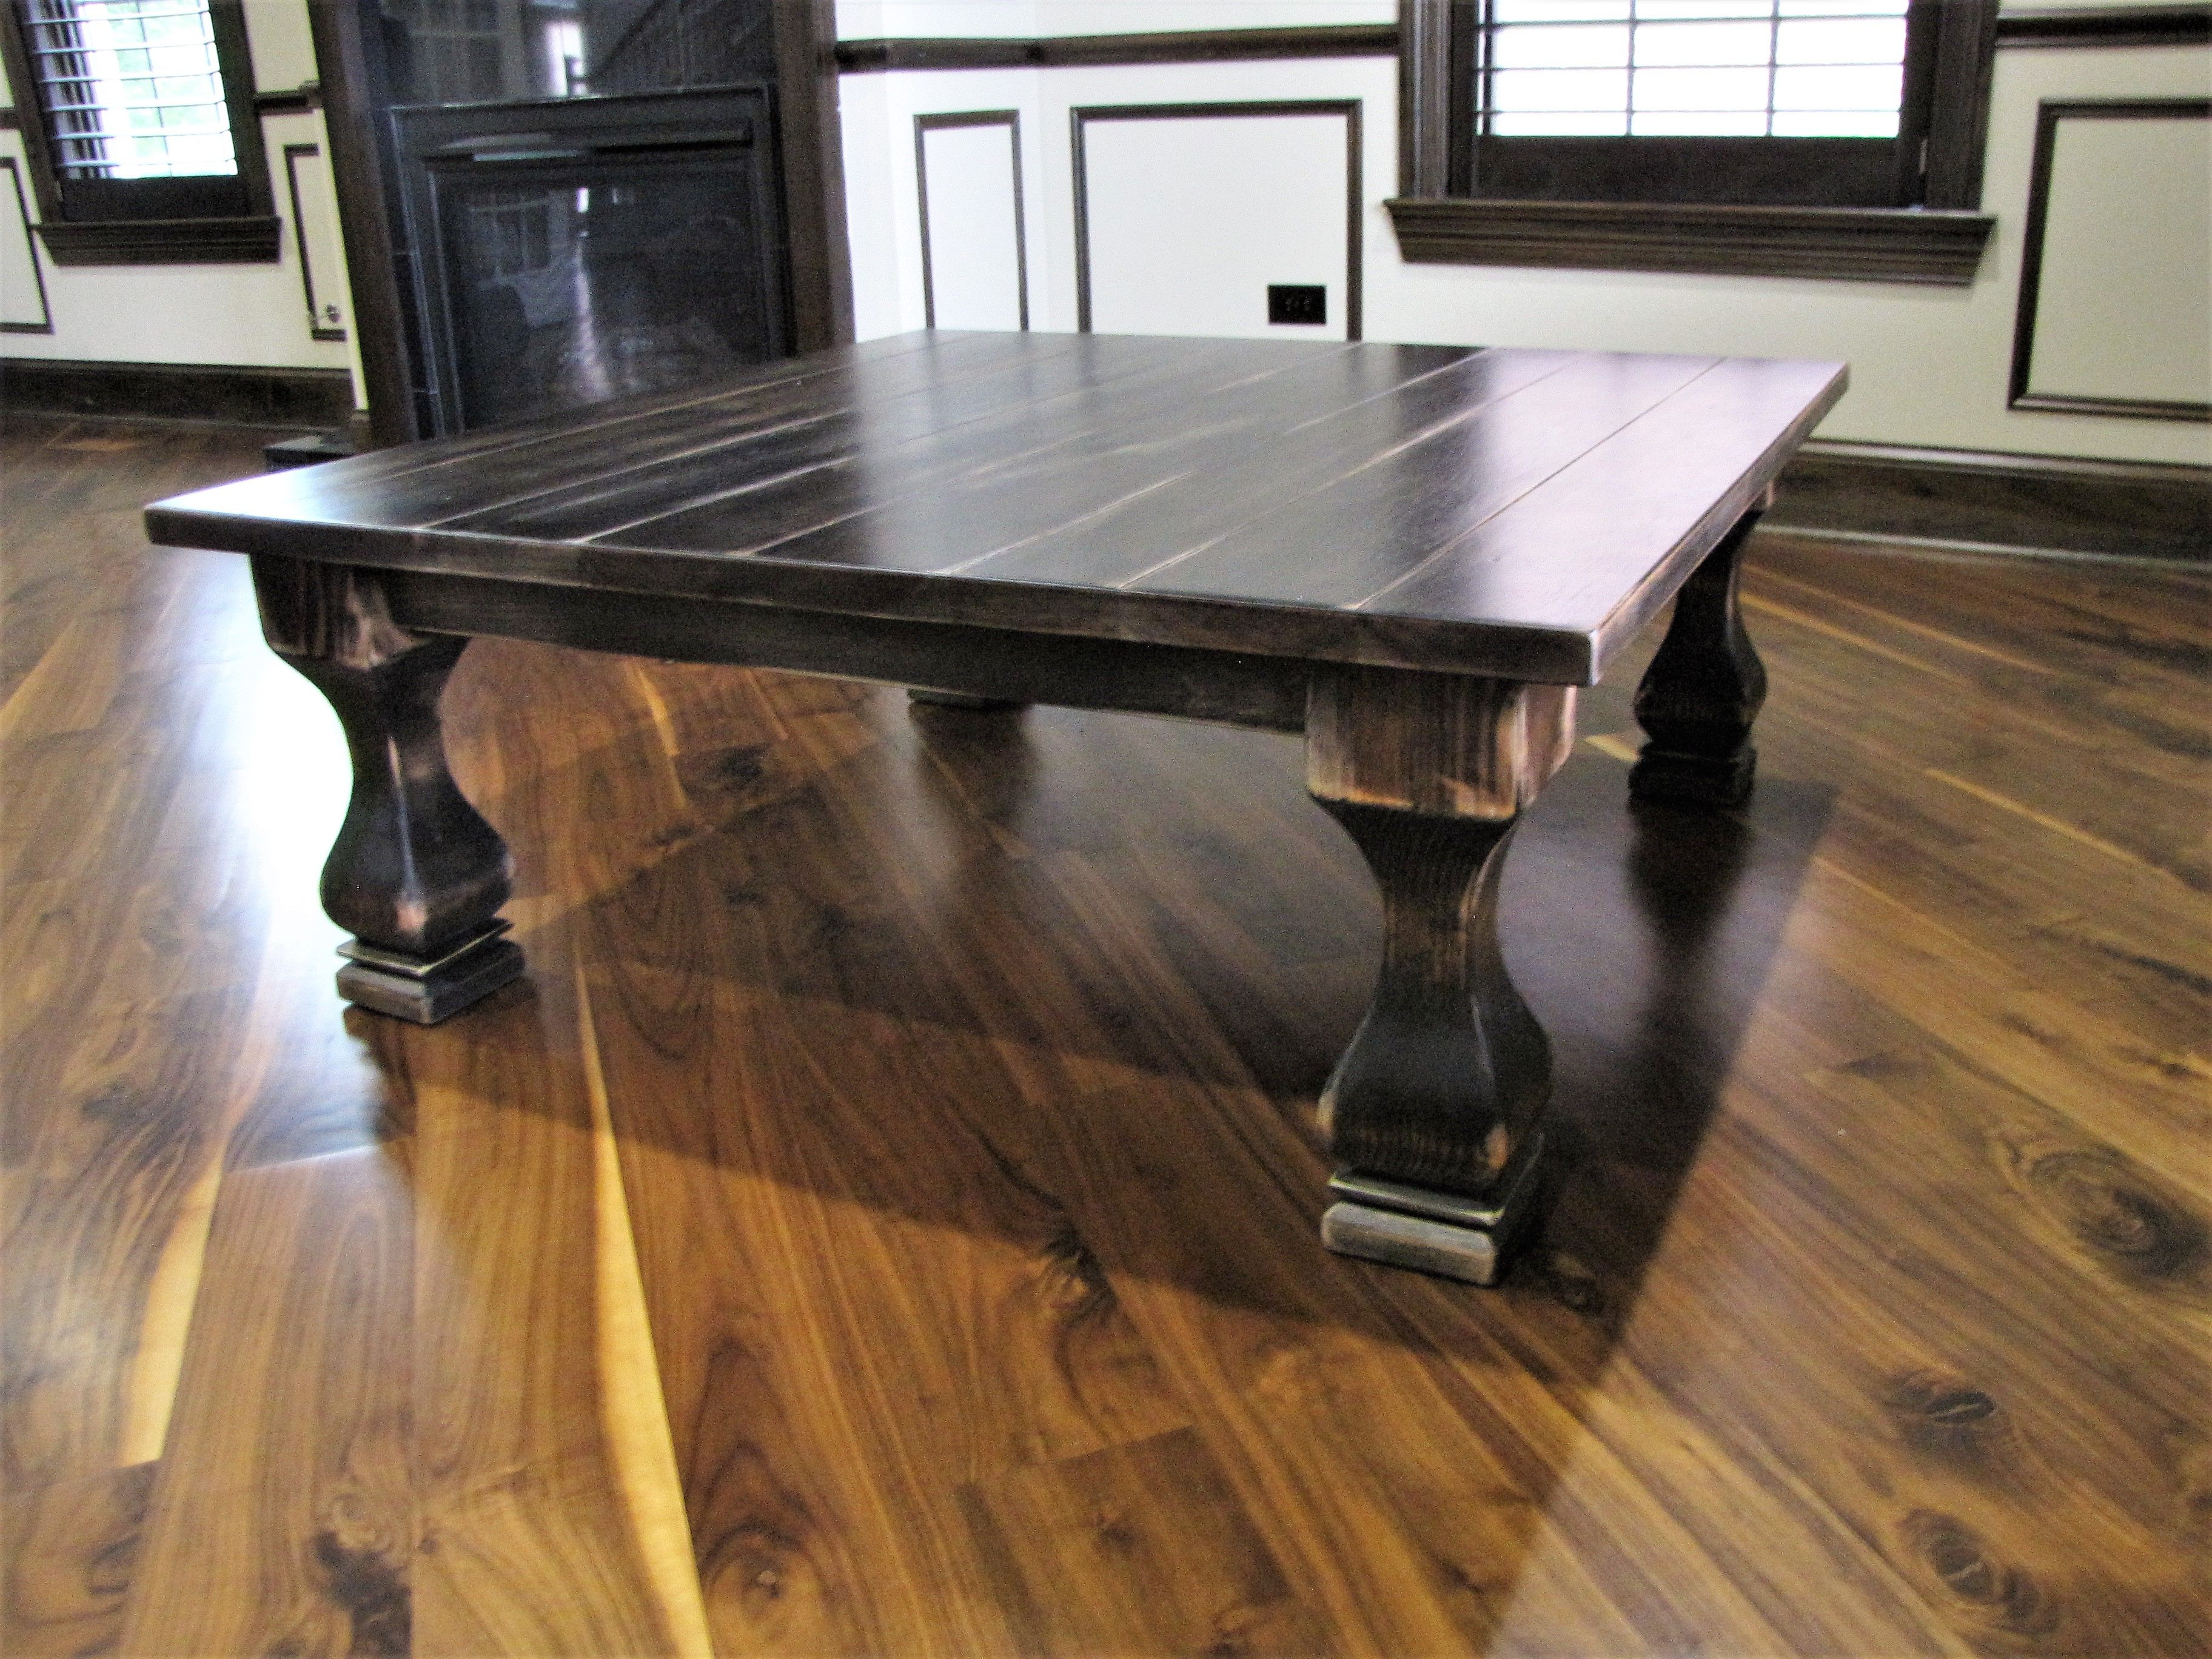 Dark belly pedestal coffee table with scuffing giving the table a